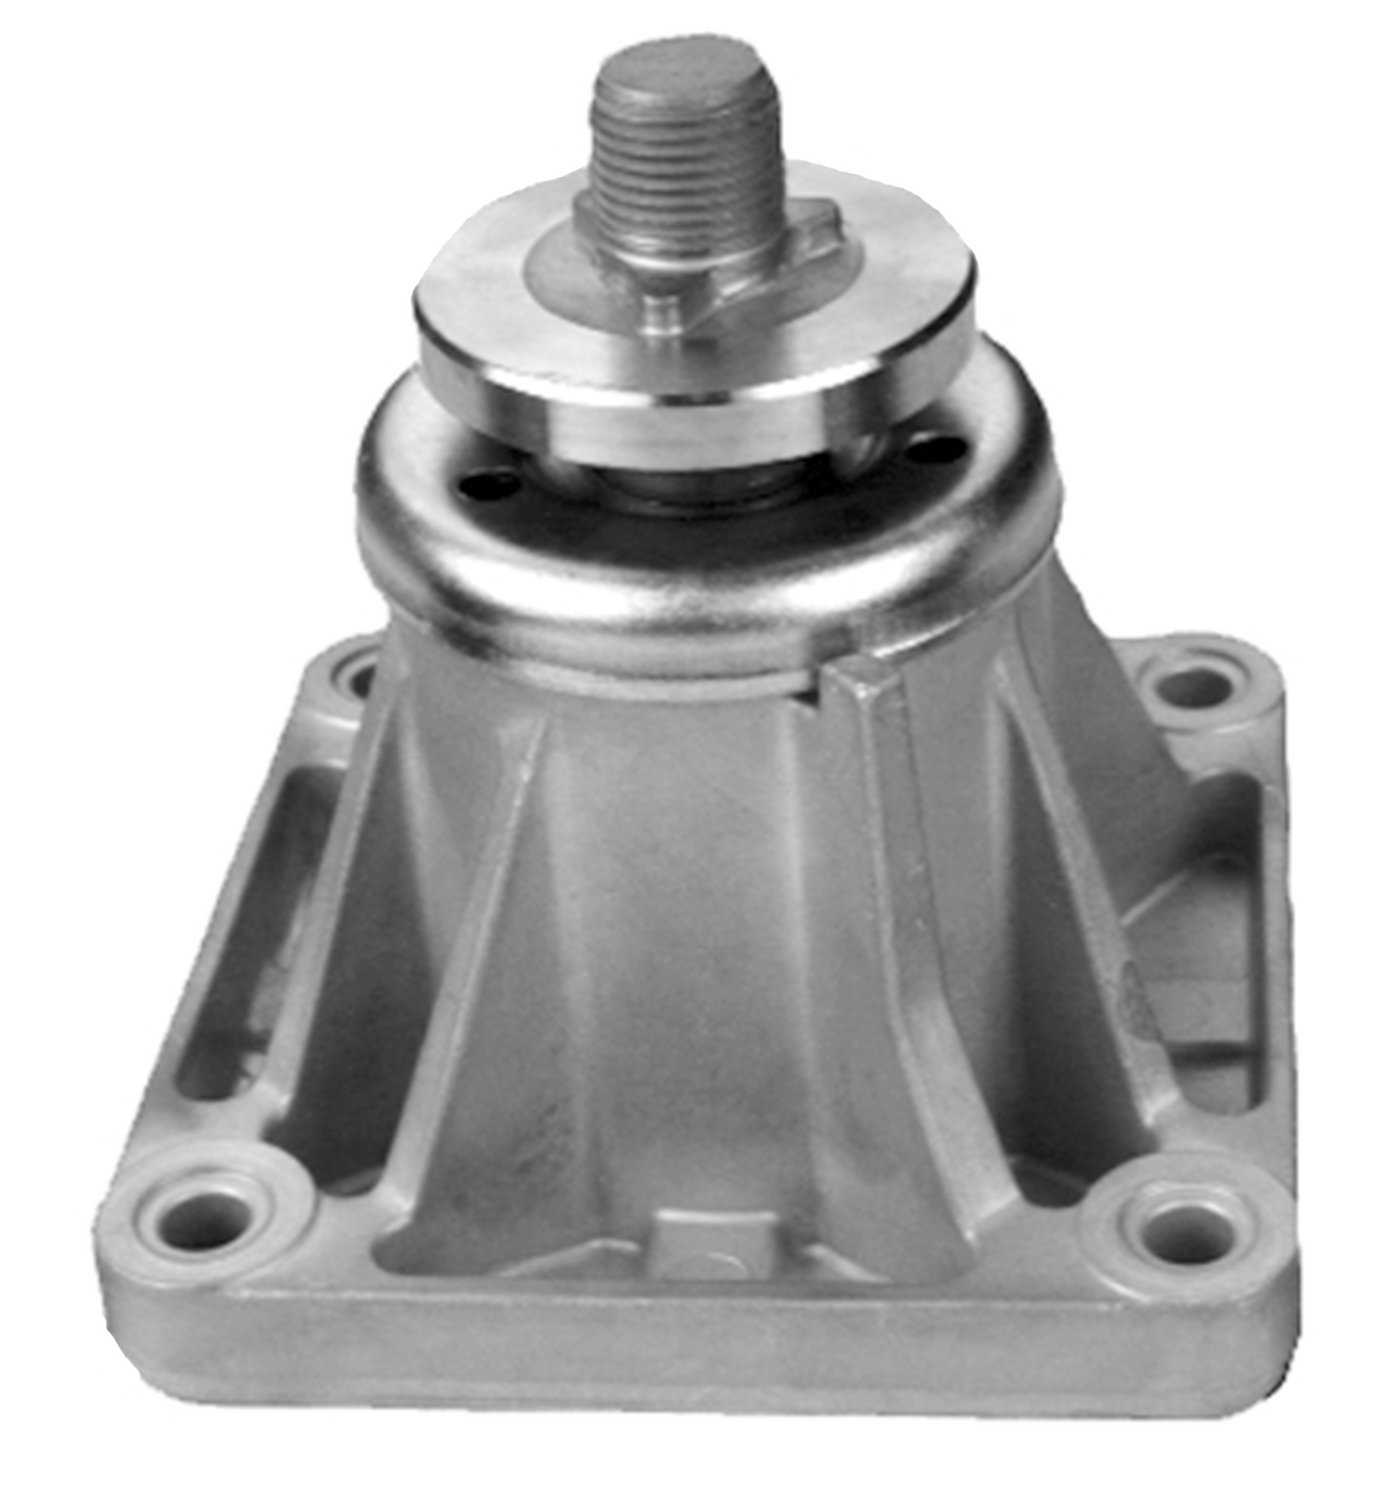 Rotary 9287 Spindle Assembly Replaces MTD 618-0241, 618-0241B, 618-0241C, 918-0241, 918-0241B, 918-0431 and Others